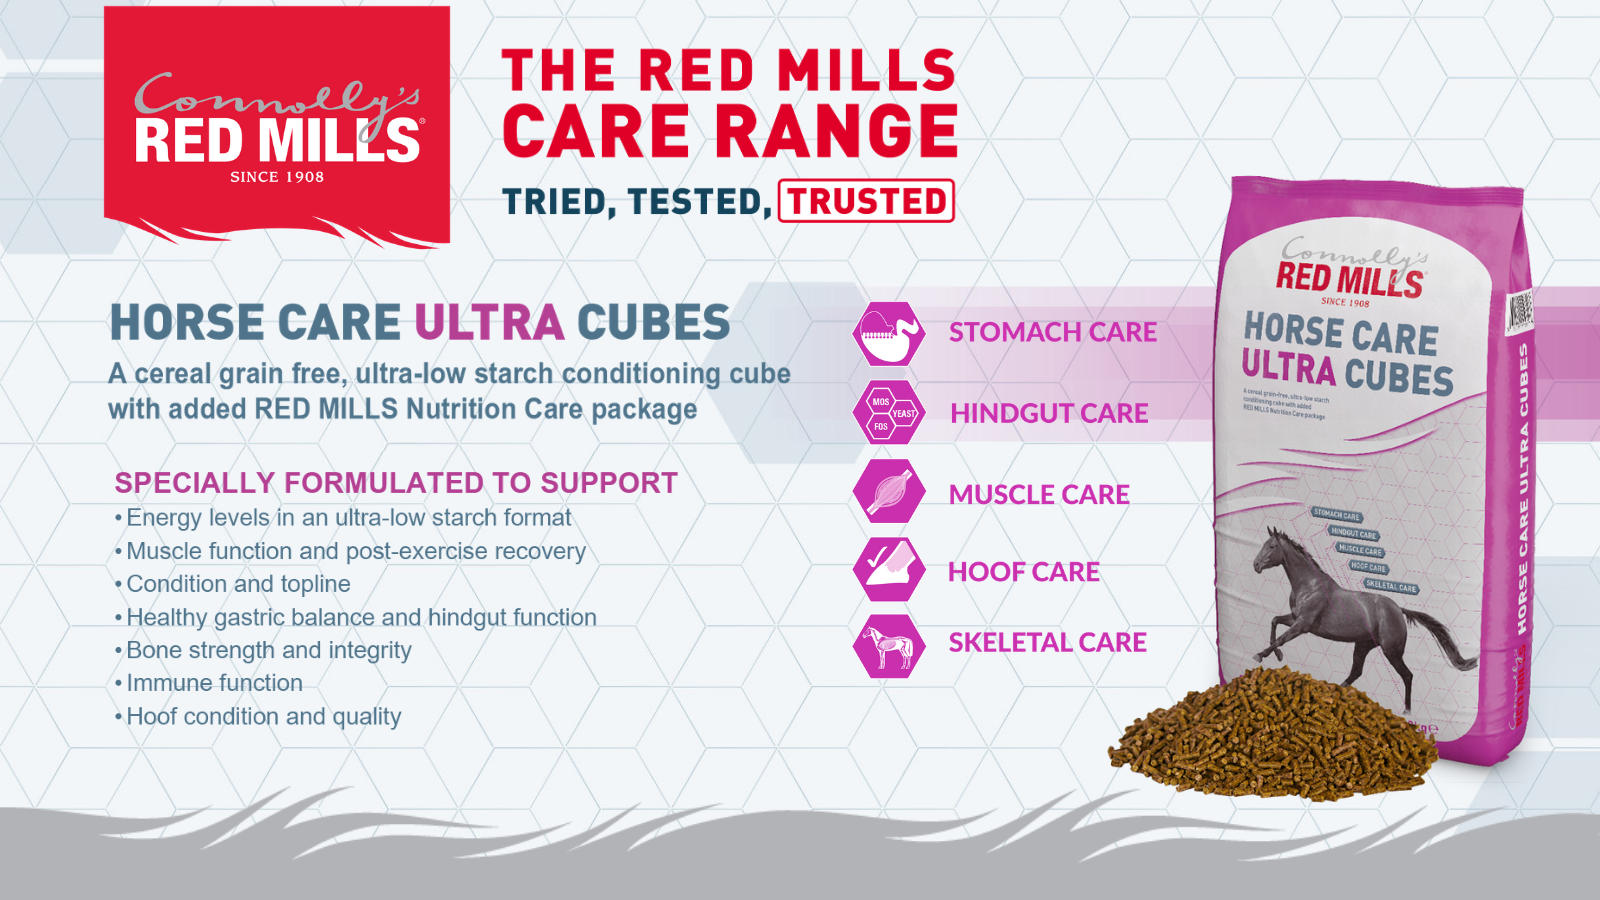 Horse Care Ultra - new to the RED MILLS Care Range